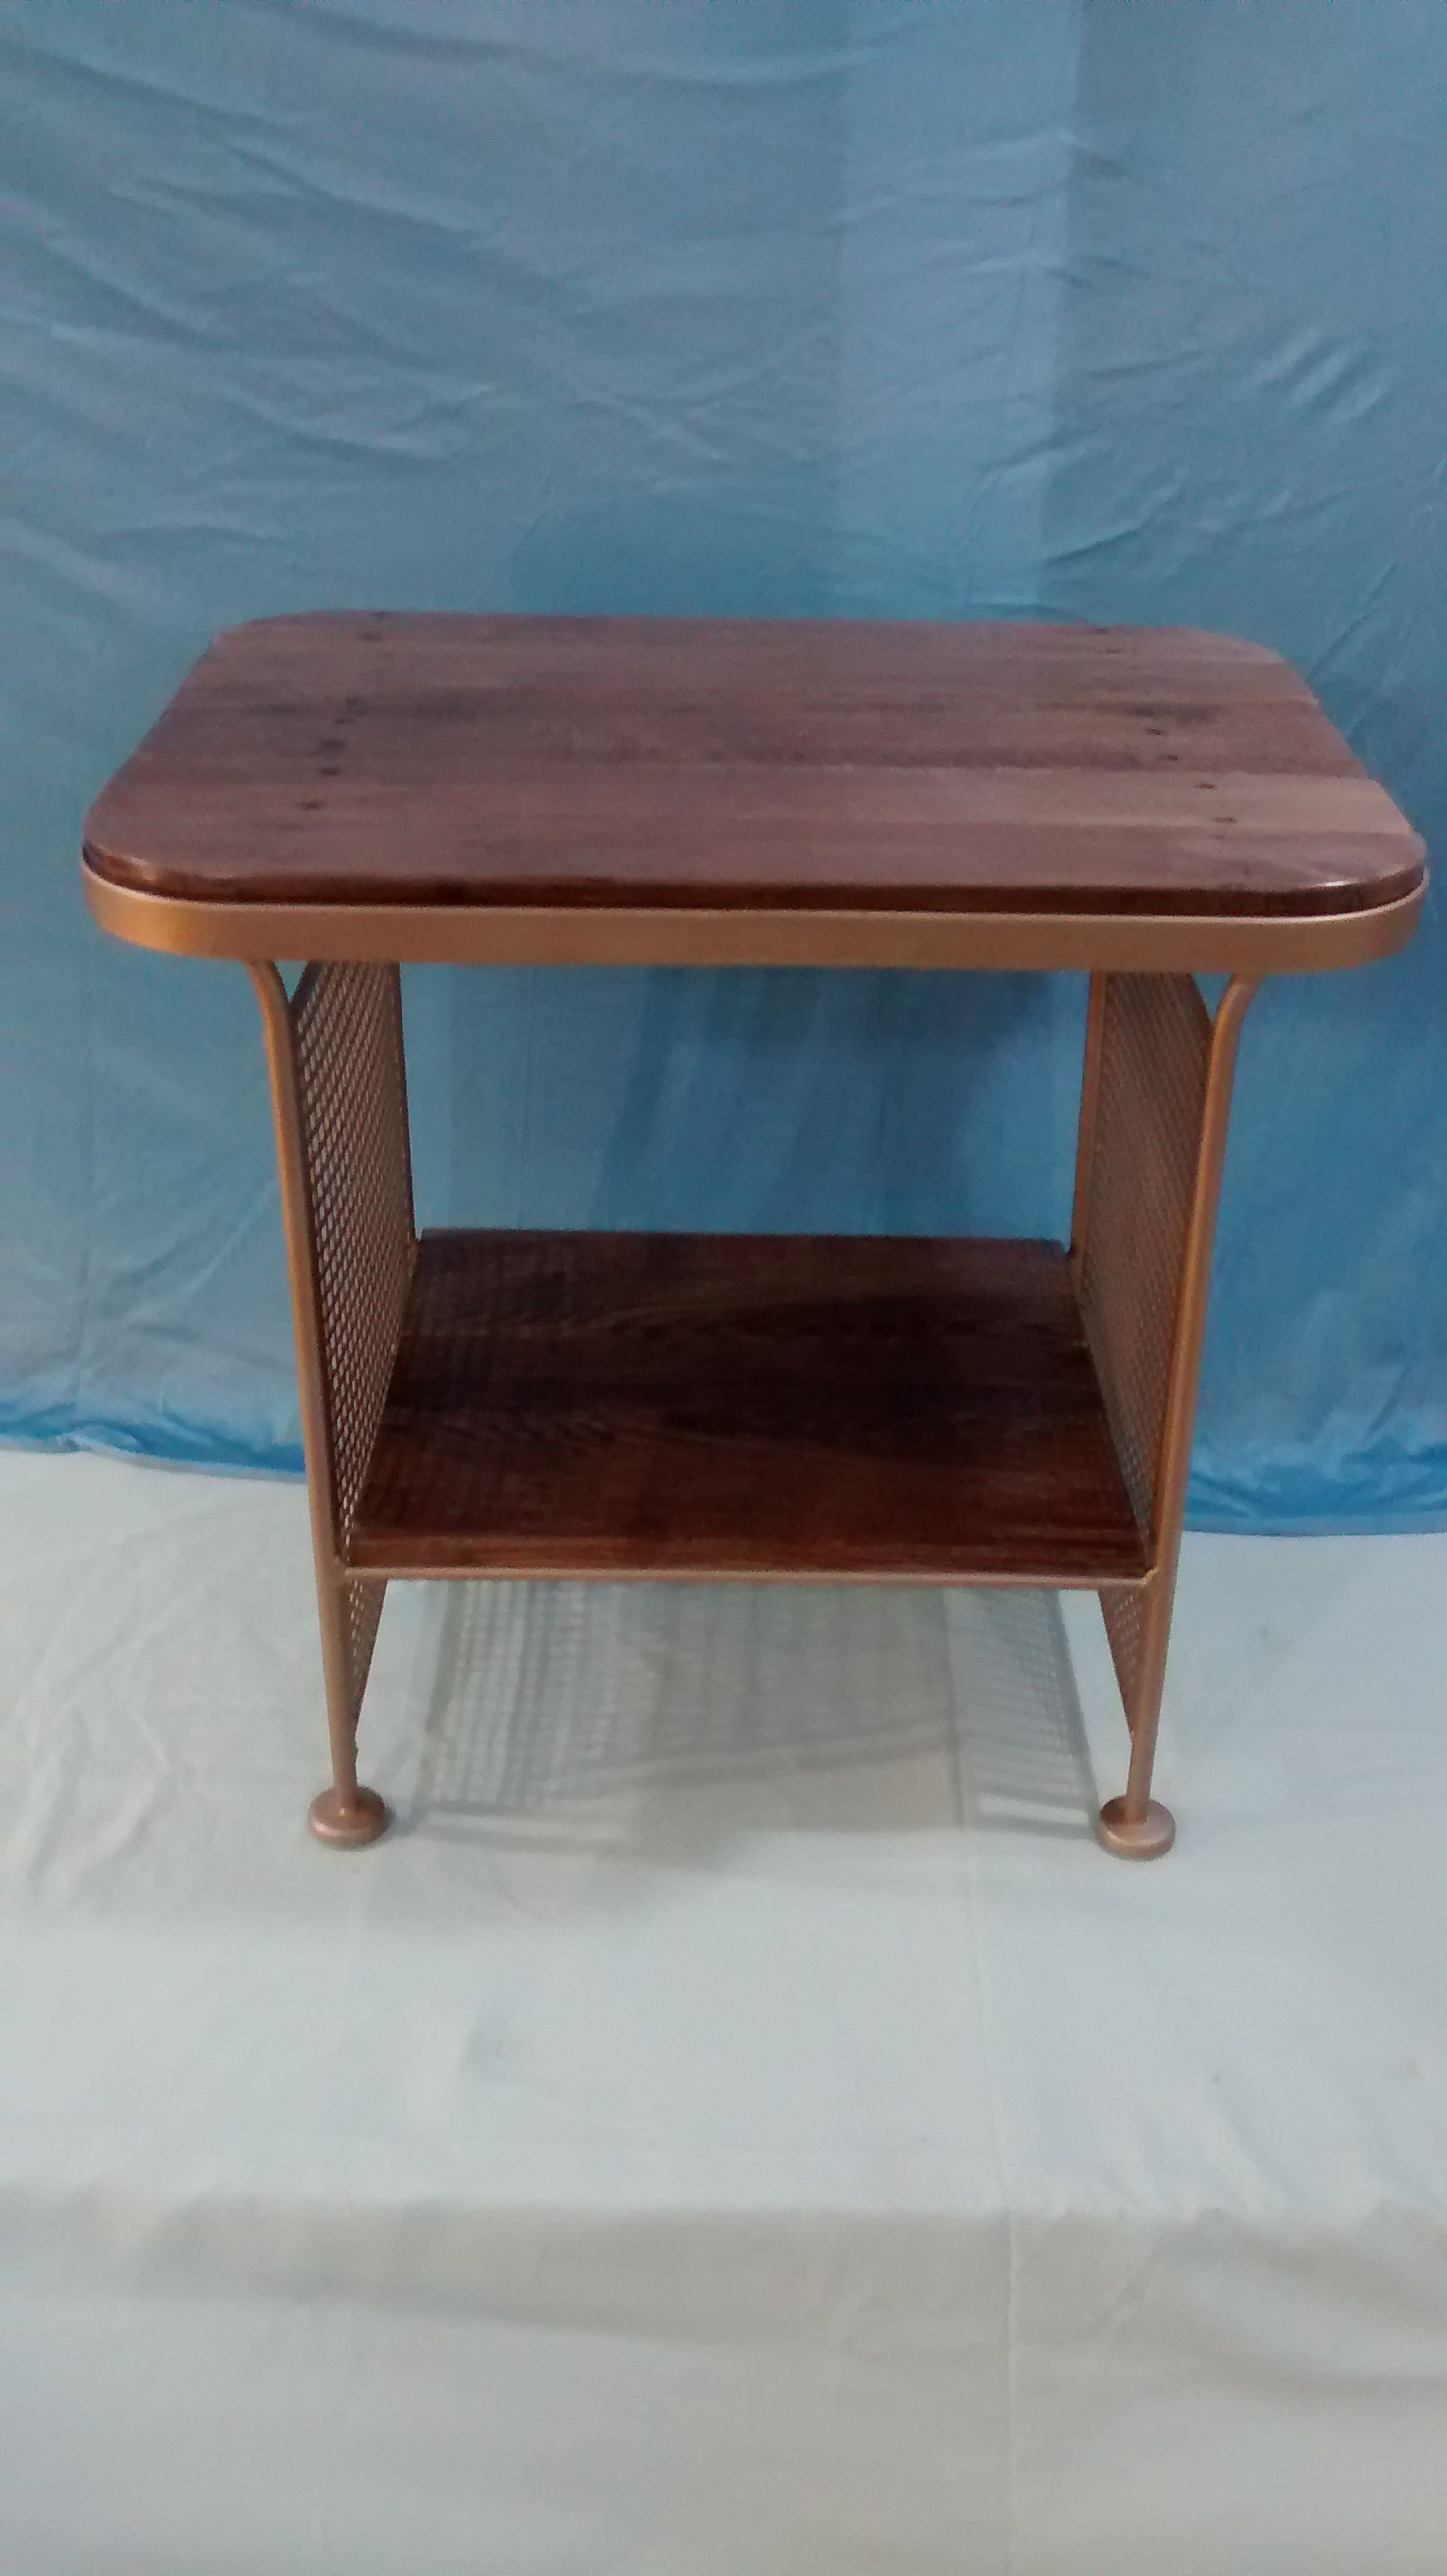 Metal Frame End Table with Reclaimed Wood Top and Shelf